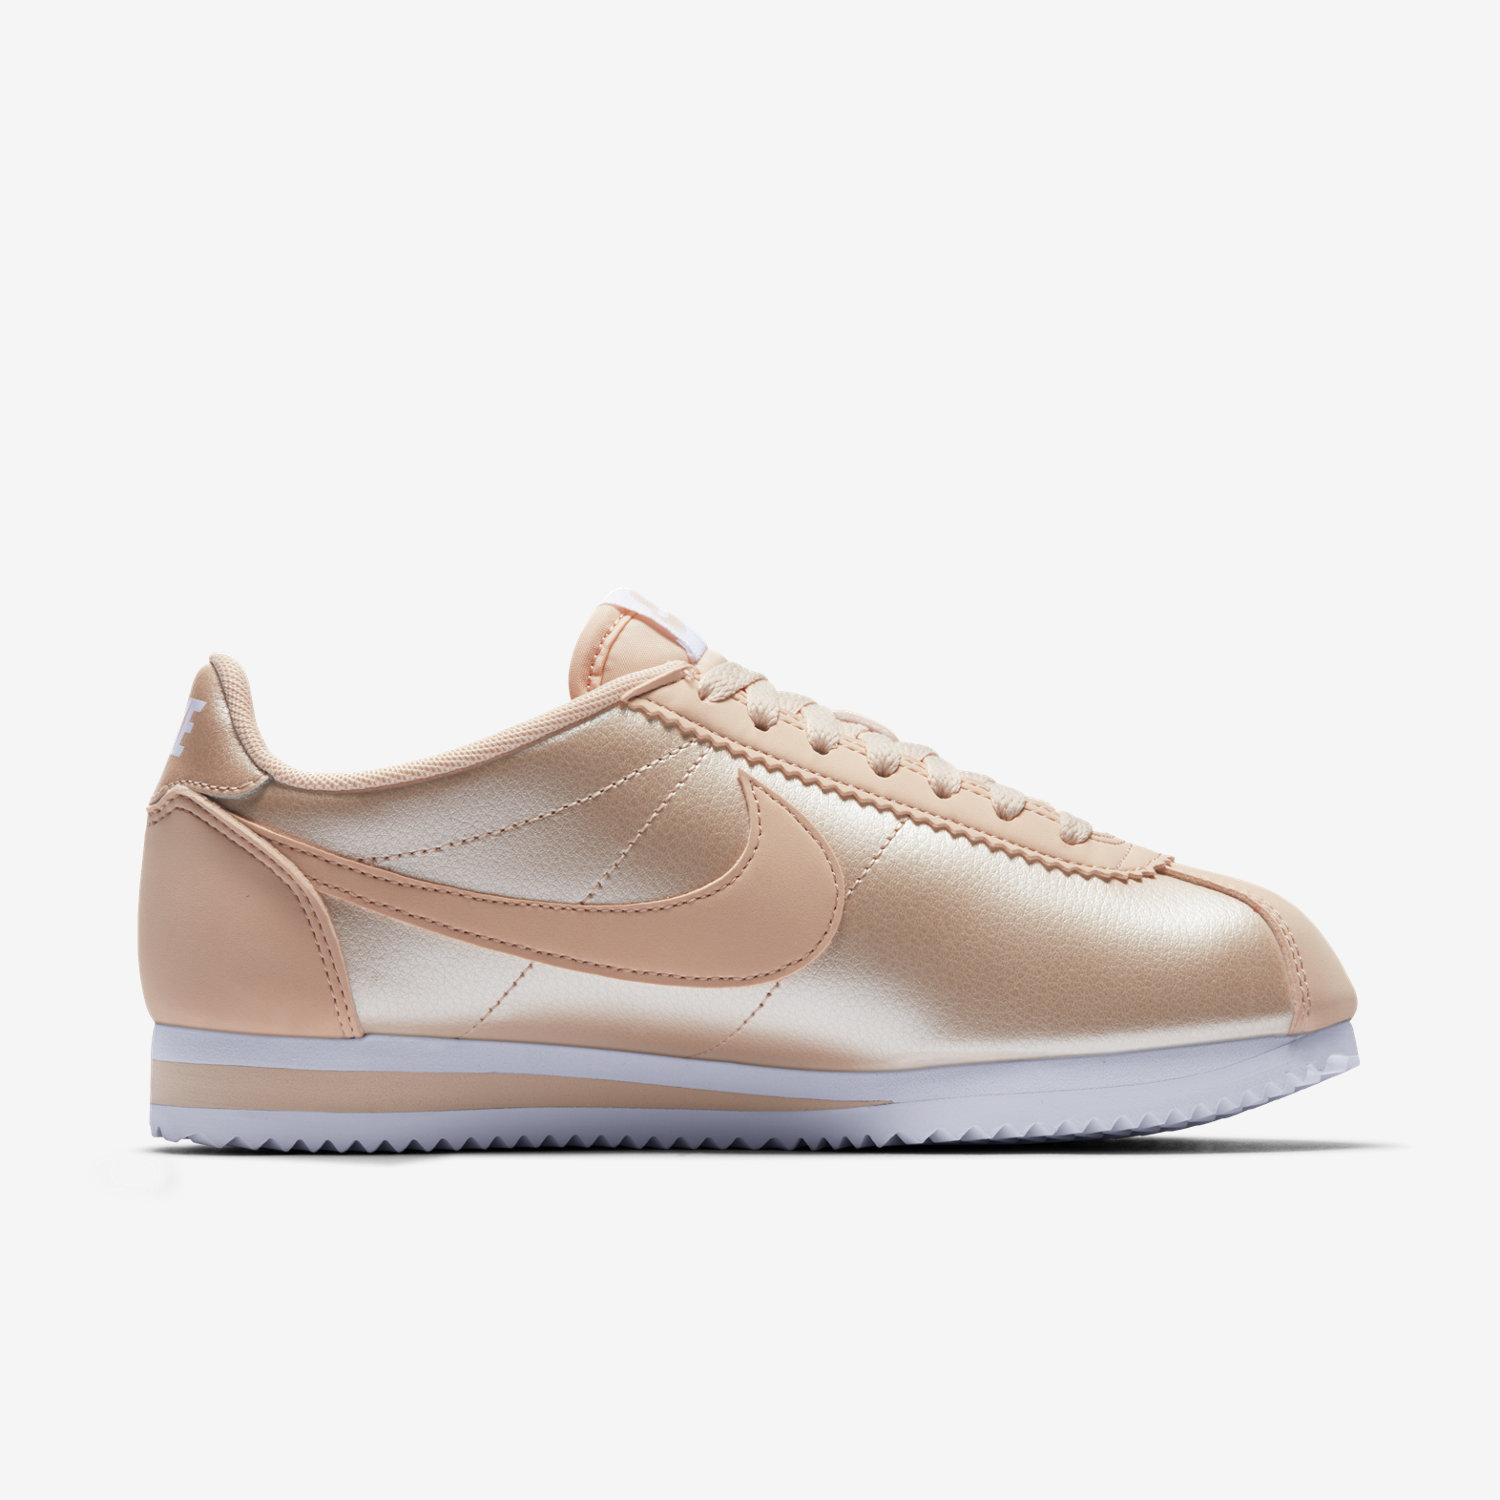 nike cortez orange white online u003e OFF61% Discounts